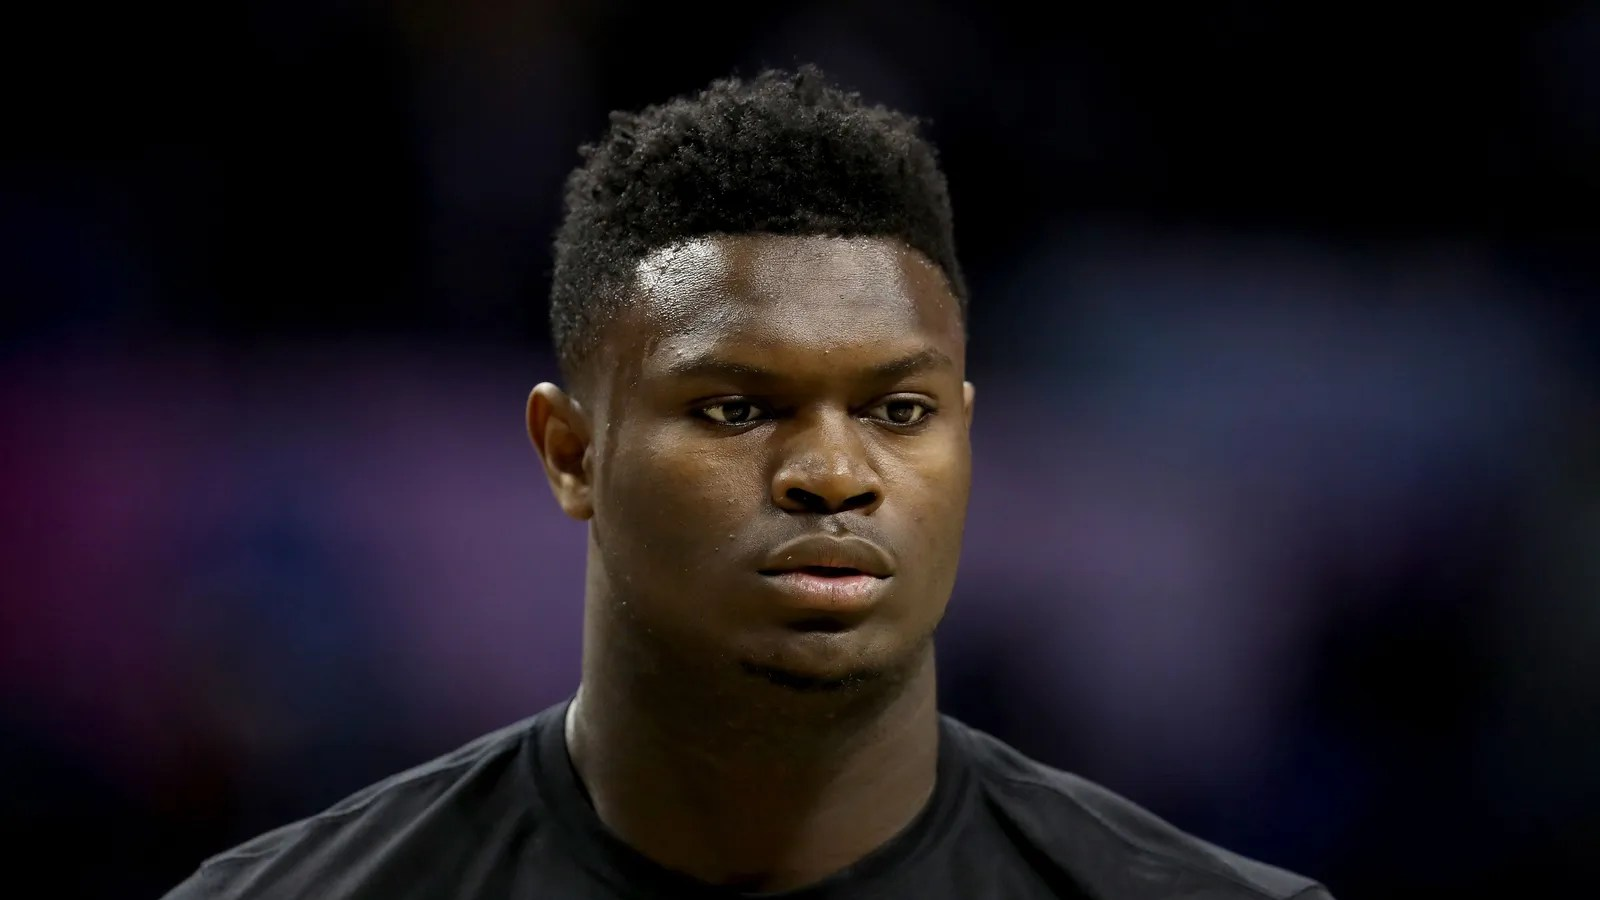 Zion Williamson In Panic After Realizing Game Falls On